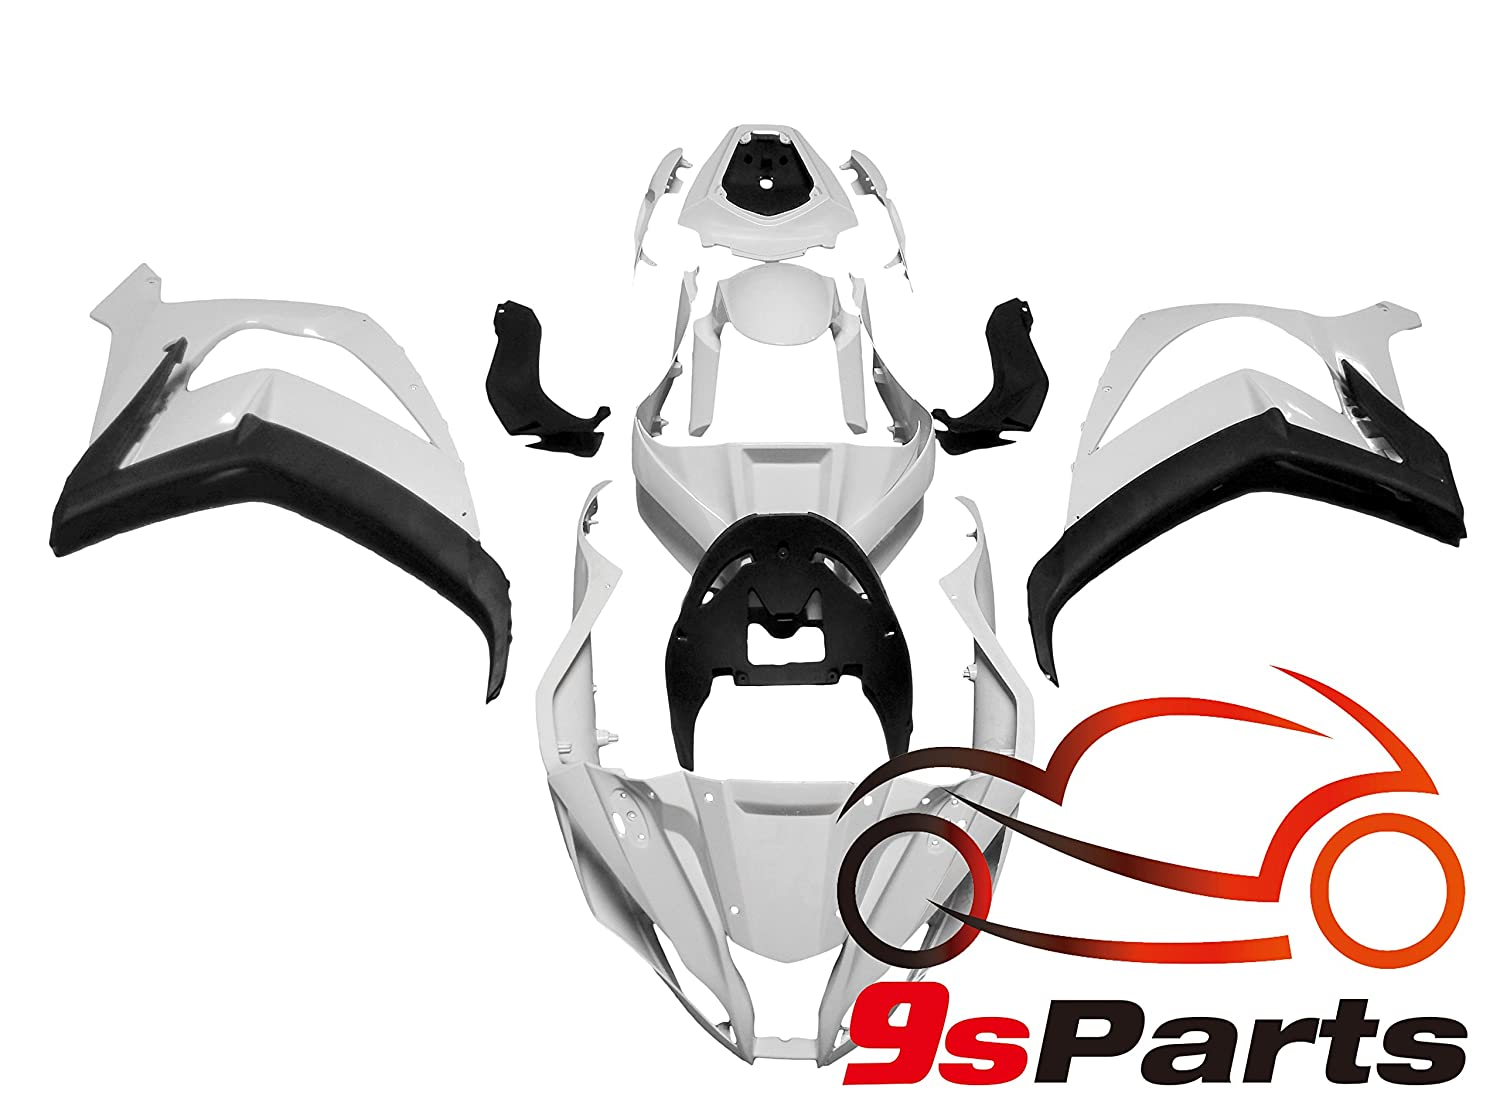 9sparts Unpainted ABS Plastic Injection Pre-Drilled Hole Cowl Fairings Bodywork Kit Complete Set For 2011 2012 2013 2014 2015 2016 Kawasaki Ninja ZX10R